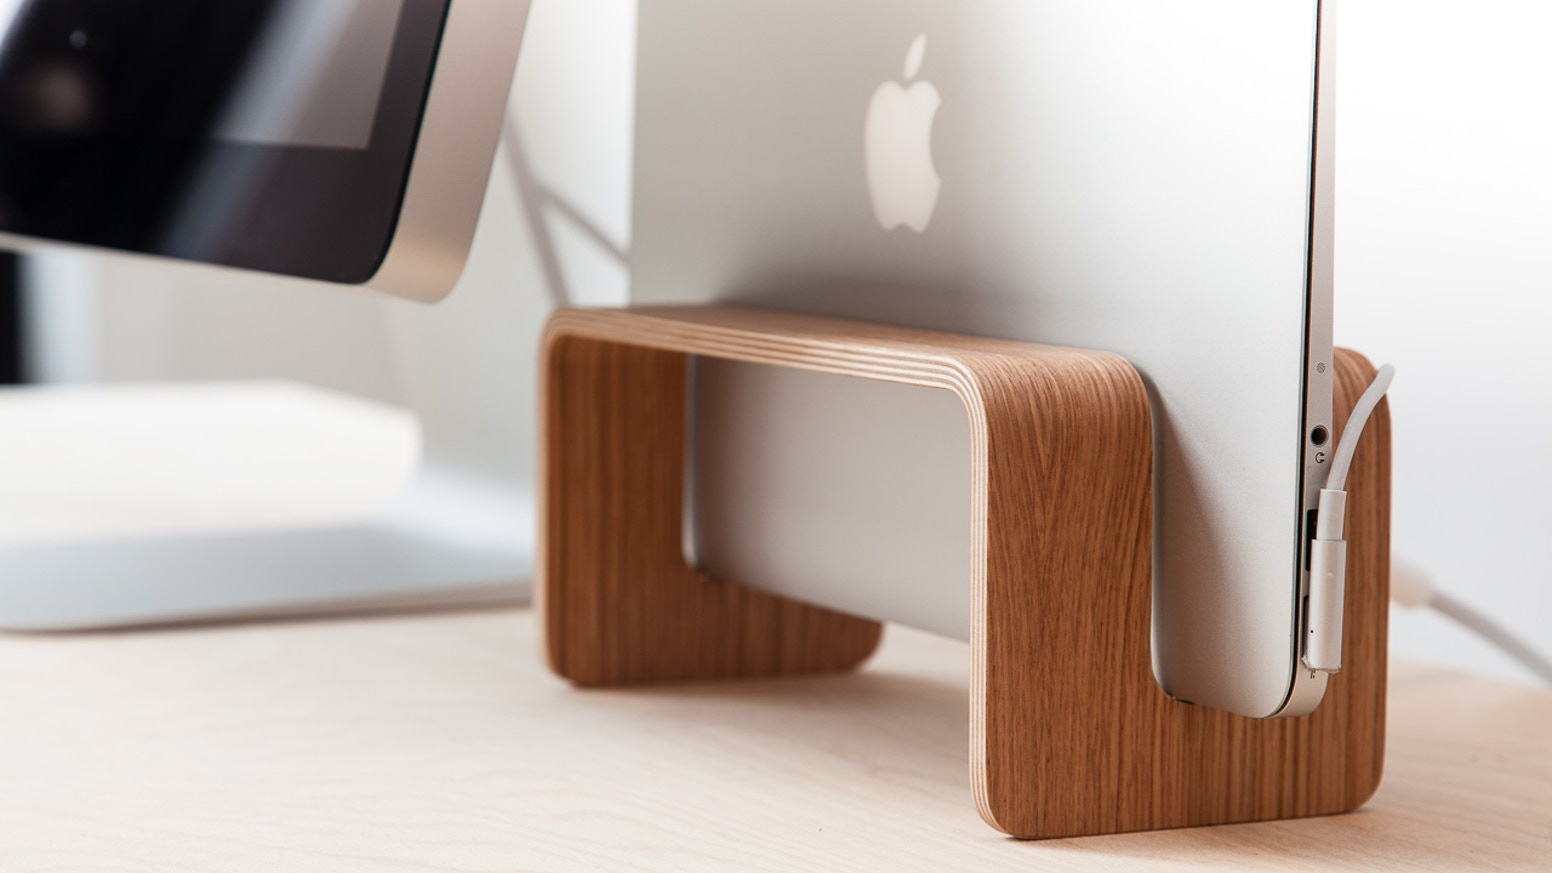 The MacBook Rack is a vertical MacBook stand. It class up your work space. It is Danish design - simple, functional and high quality.